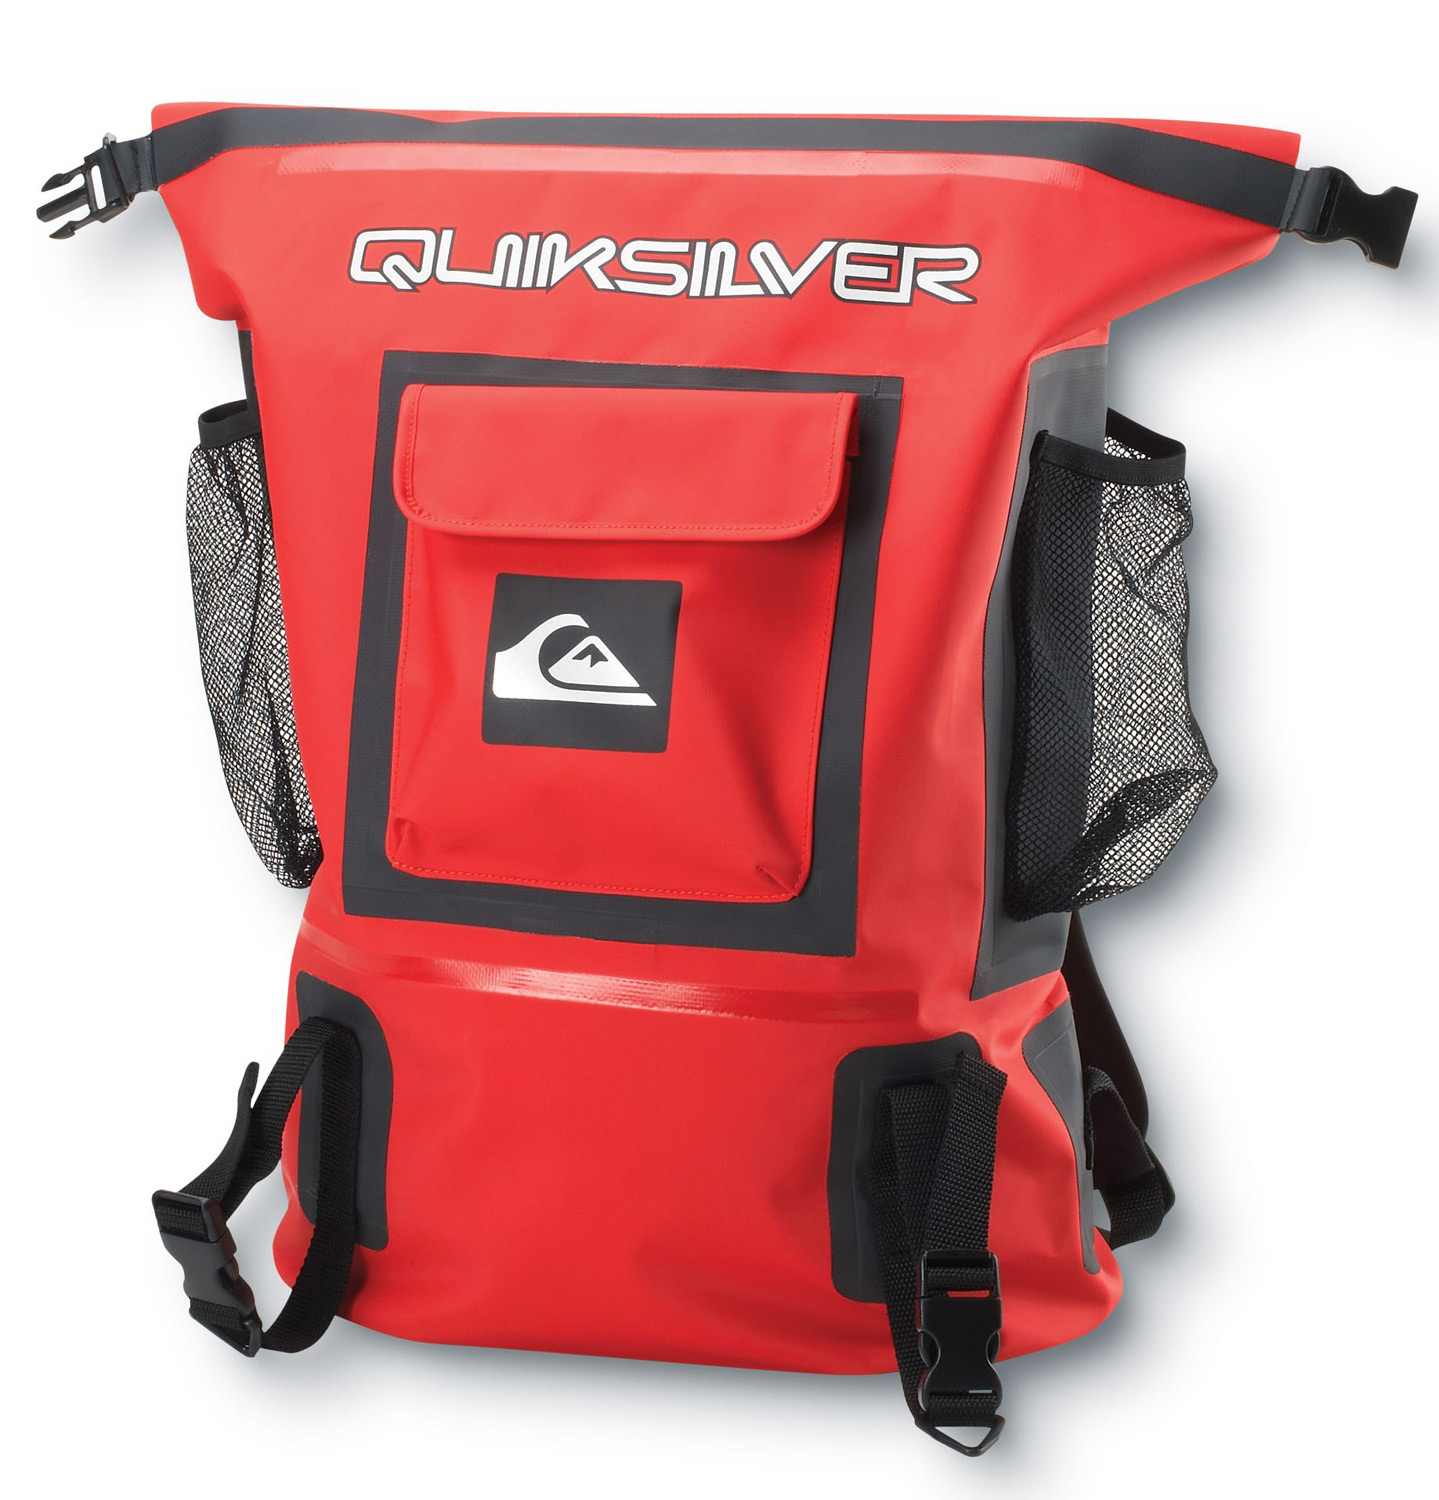 "Surf Key Features of the Quiksilver Sea Locker Backpack 32L: Volume: 32L Size: 19""x13""x8"" Seam sealed tarpaulin Roll top sealable dry bag Large main compartment 3 exterior storage pockets Reflective logos for visibility Adjustable external gear straps 3 interior zip mesh pockets for organization Padded shoulder straps - $80.00"